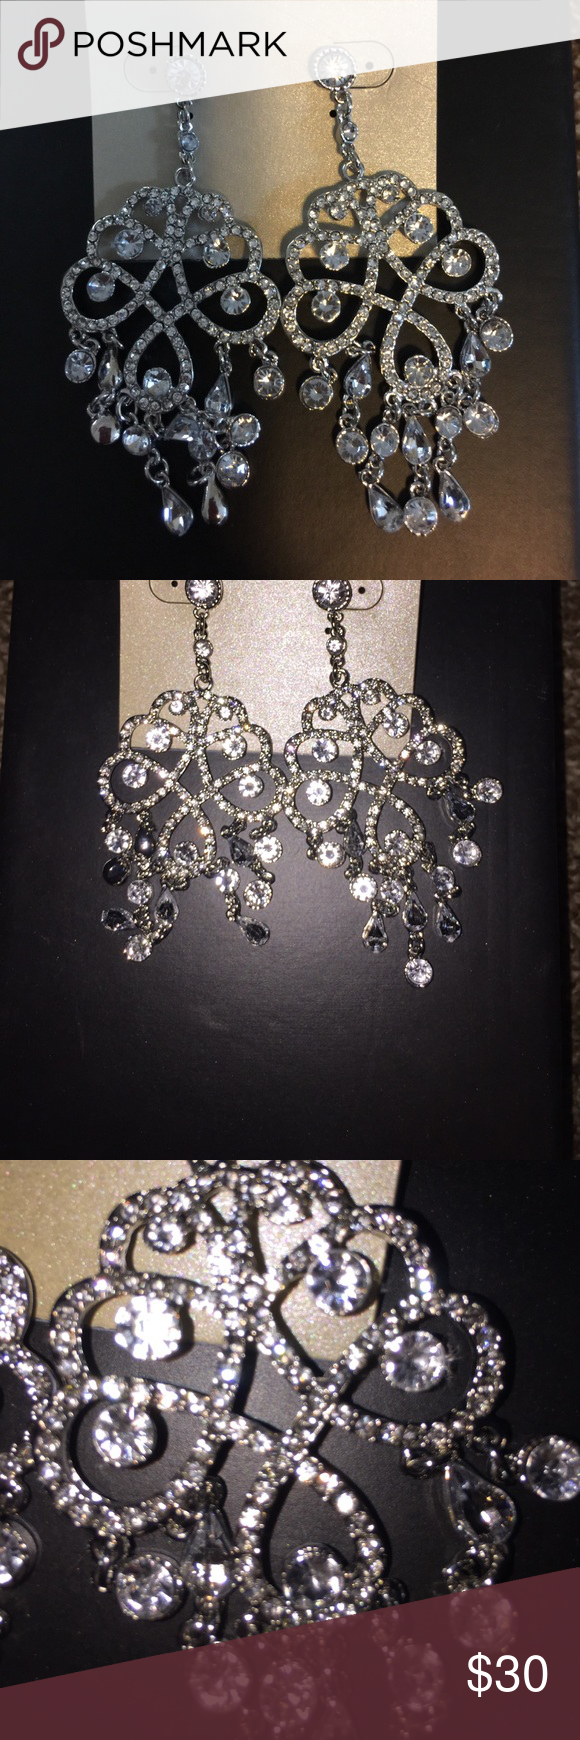 Beautiful rhinestone chandelier earrings great large rhinestone beautiful rhinestone chandelier earrings great large rhinestone earrings will go great for a formal look or arubaitofo Choice Image